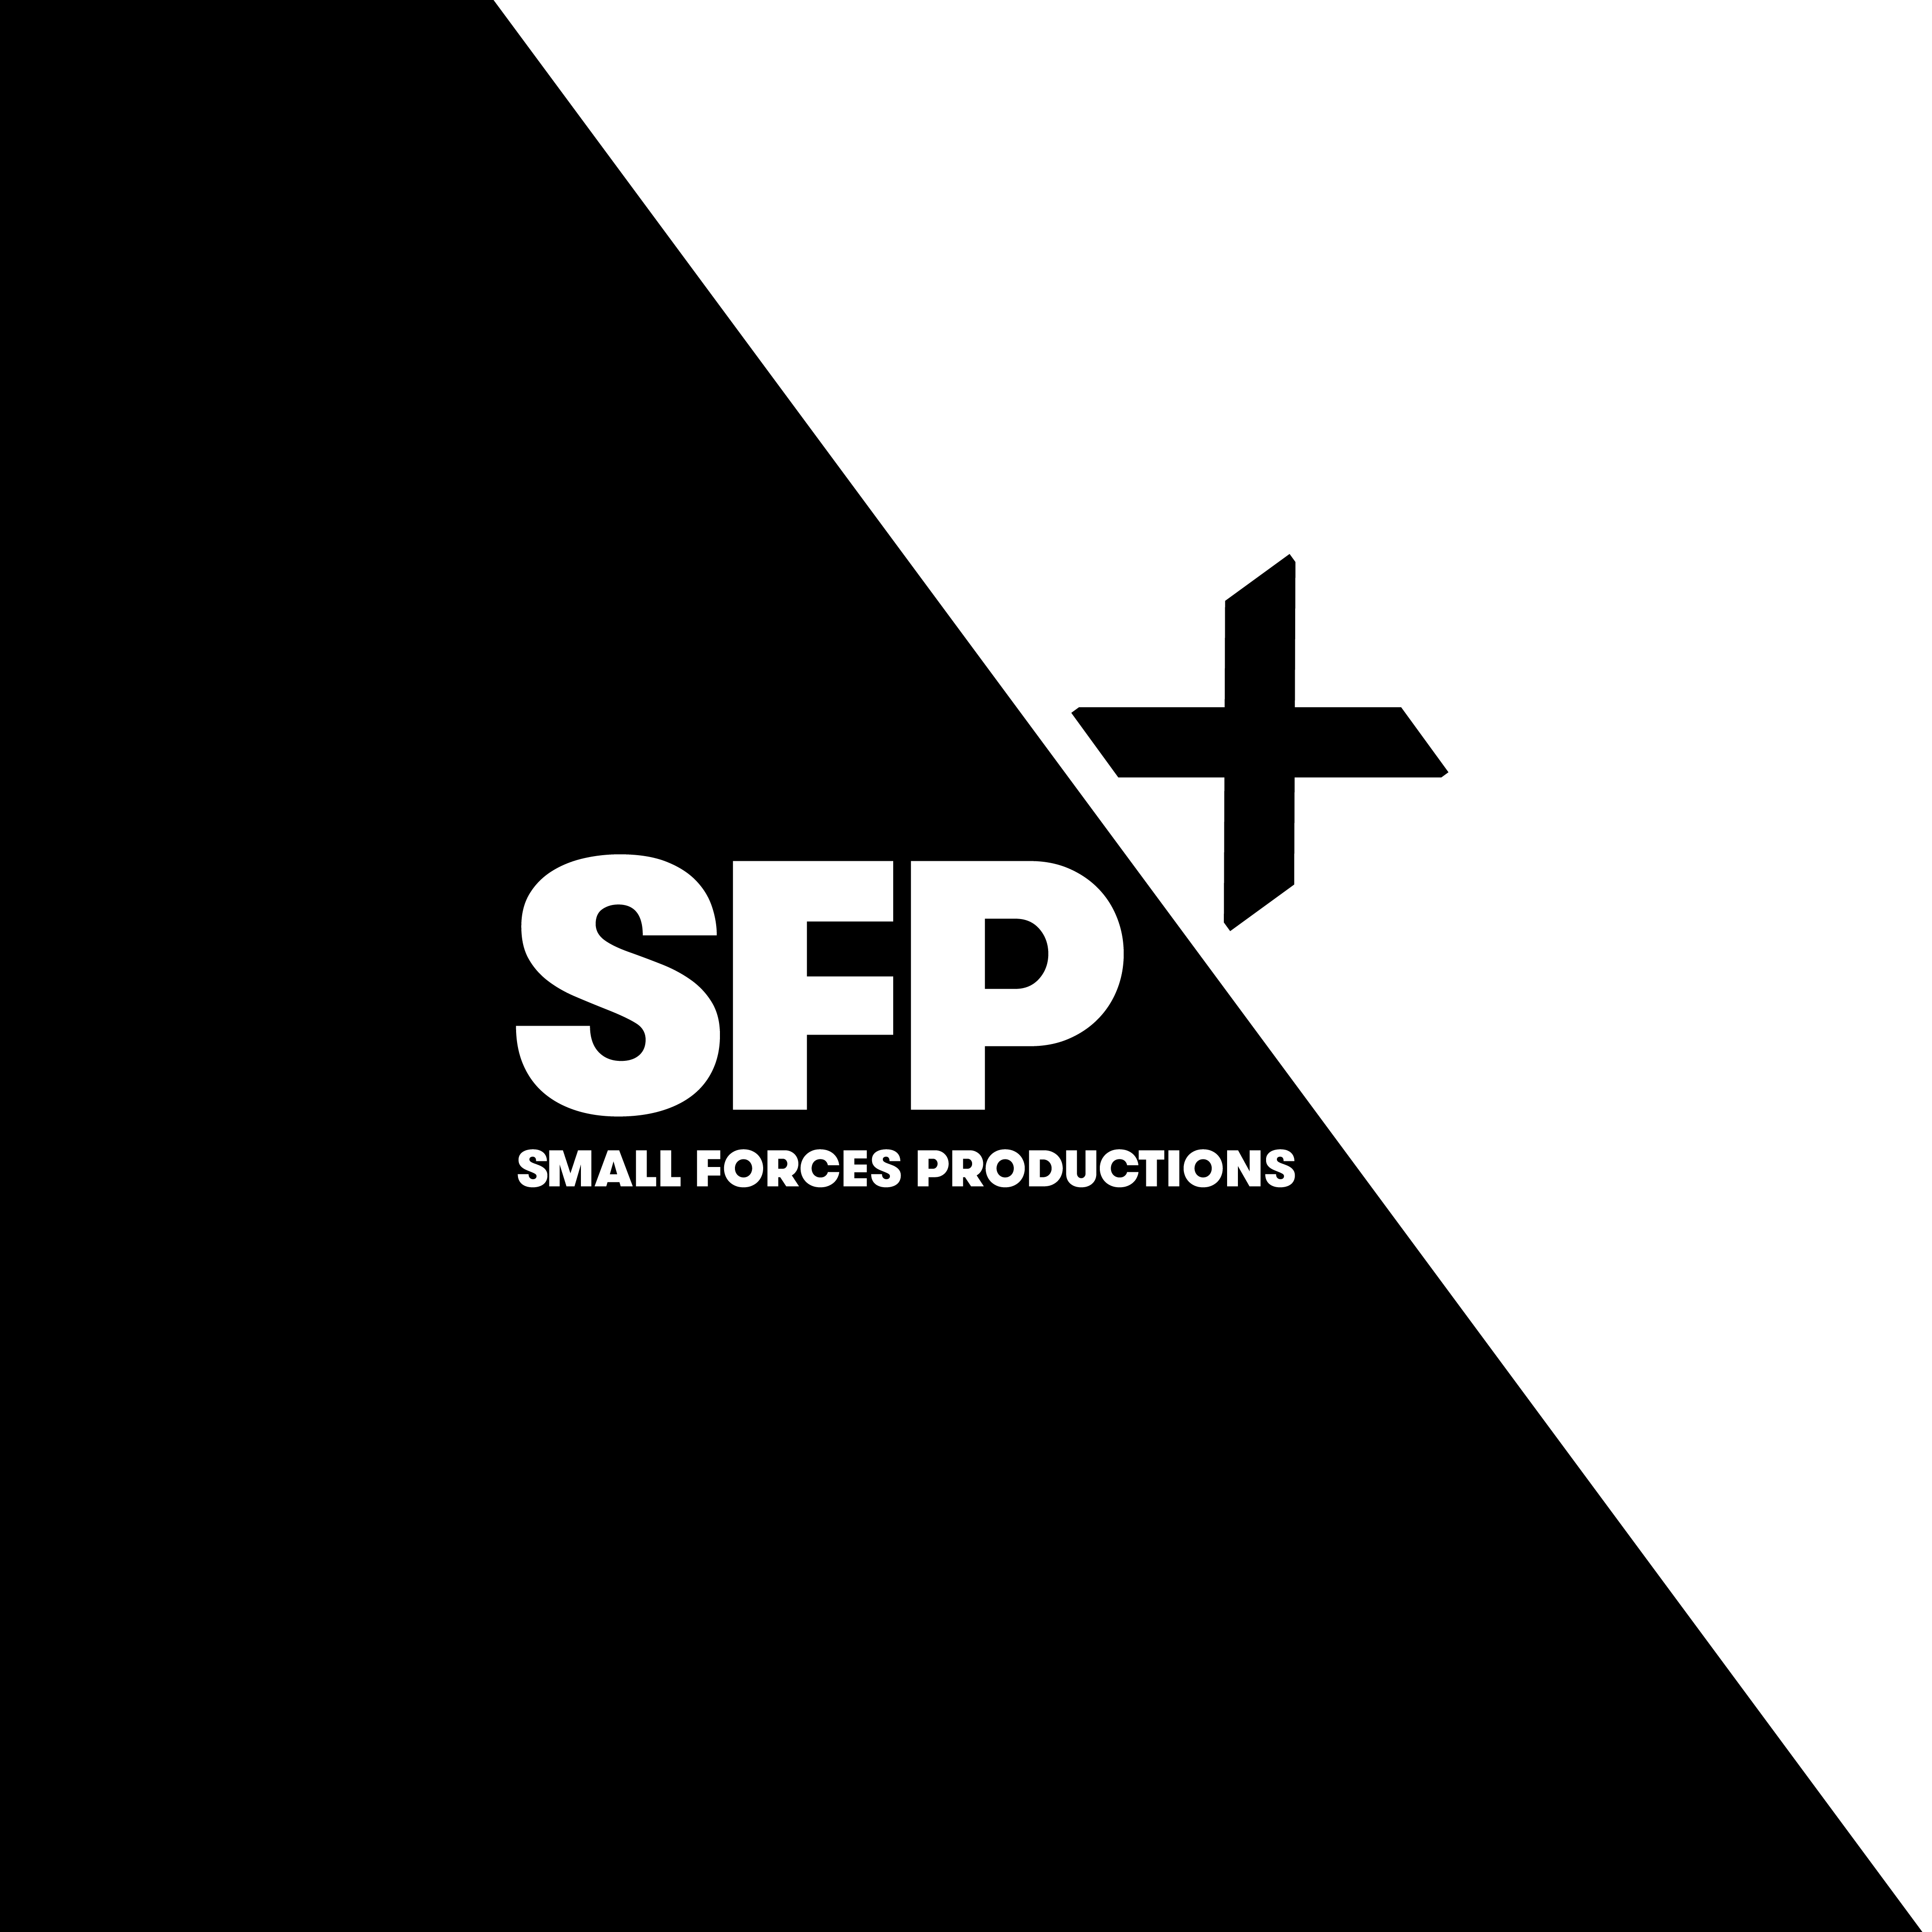 Small Forces Productions